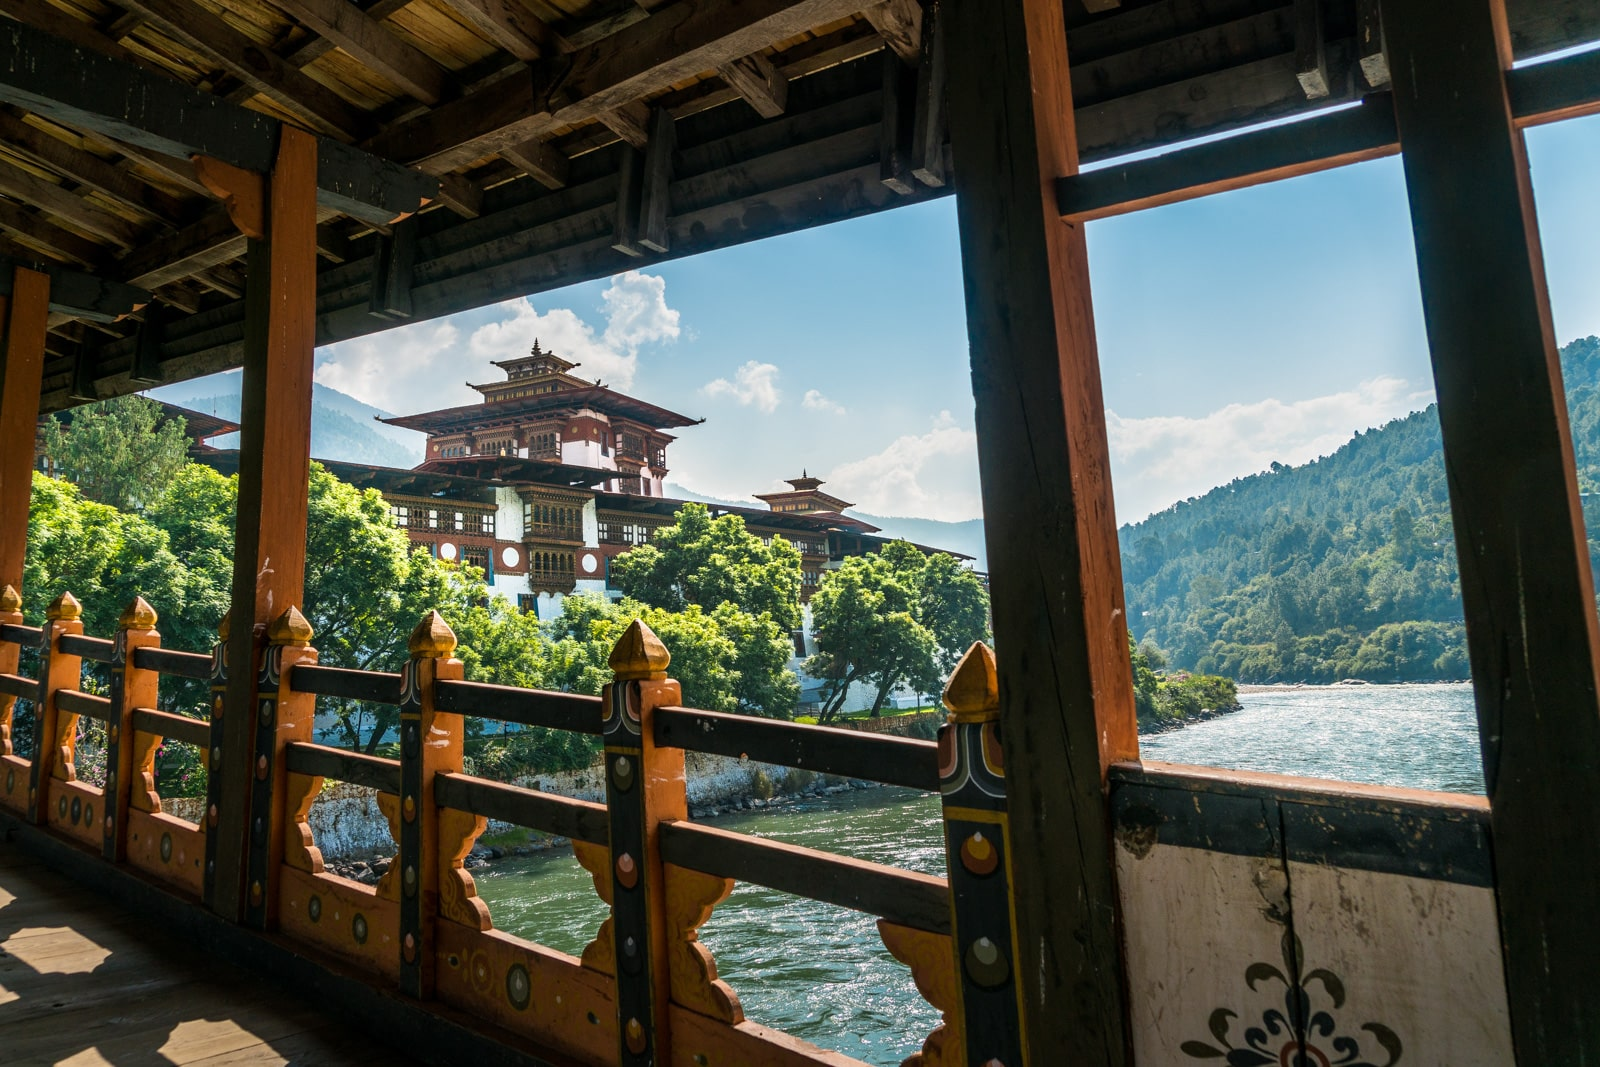 Photos of Bhutan - Bridge into Punakha dzong - Lost With Purpose travel blog